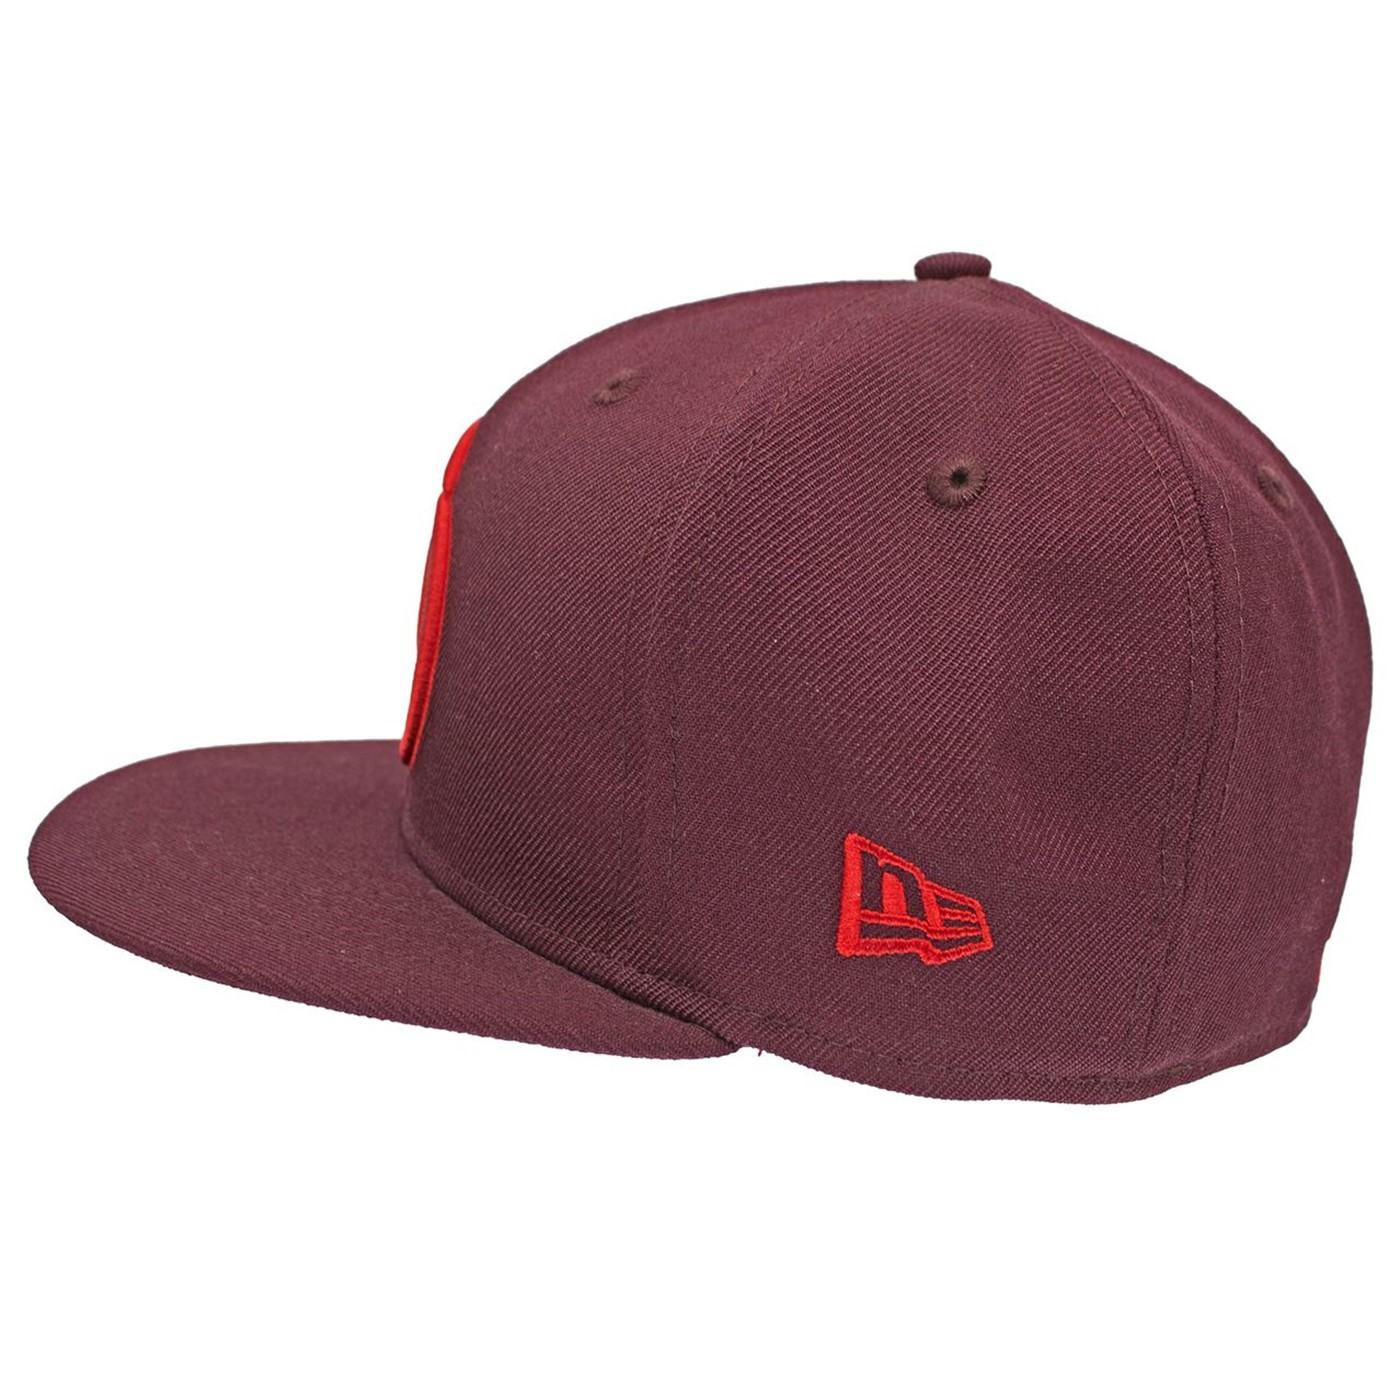 Daredevil Red Symbol on Maroon 59Fifty Hat